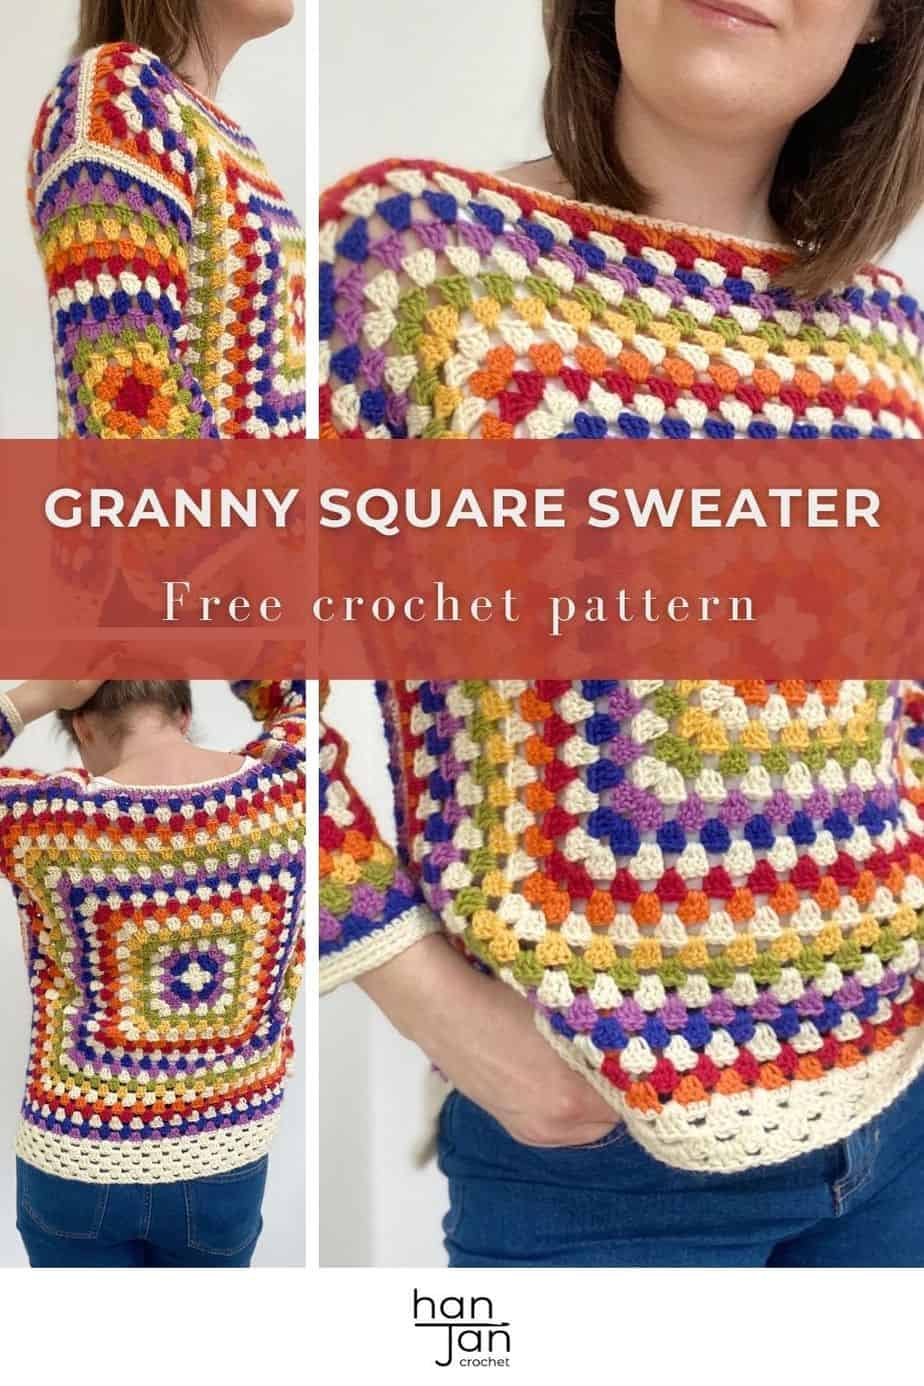 collage of images showing rainbow granny square crochet sweater